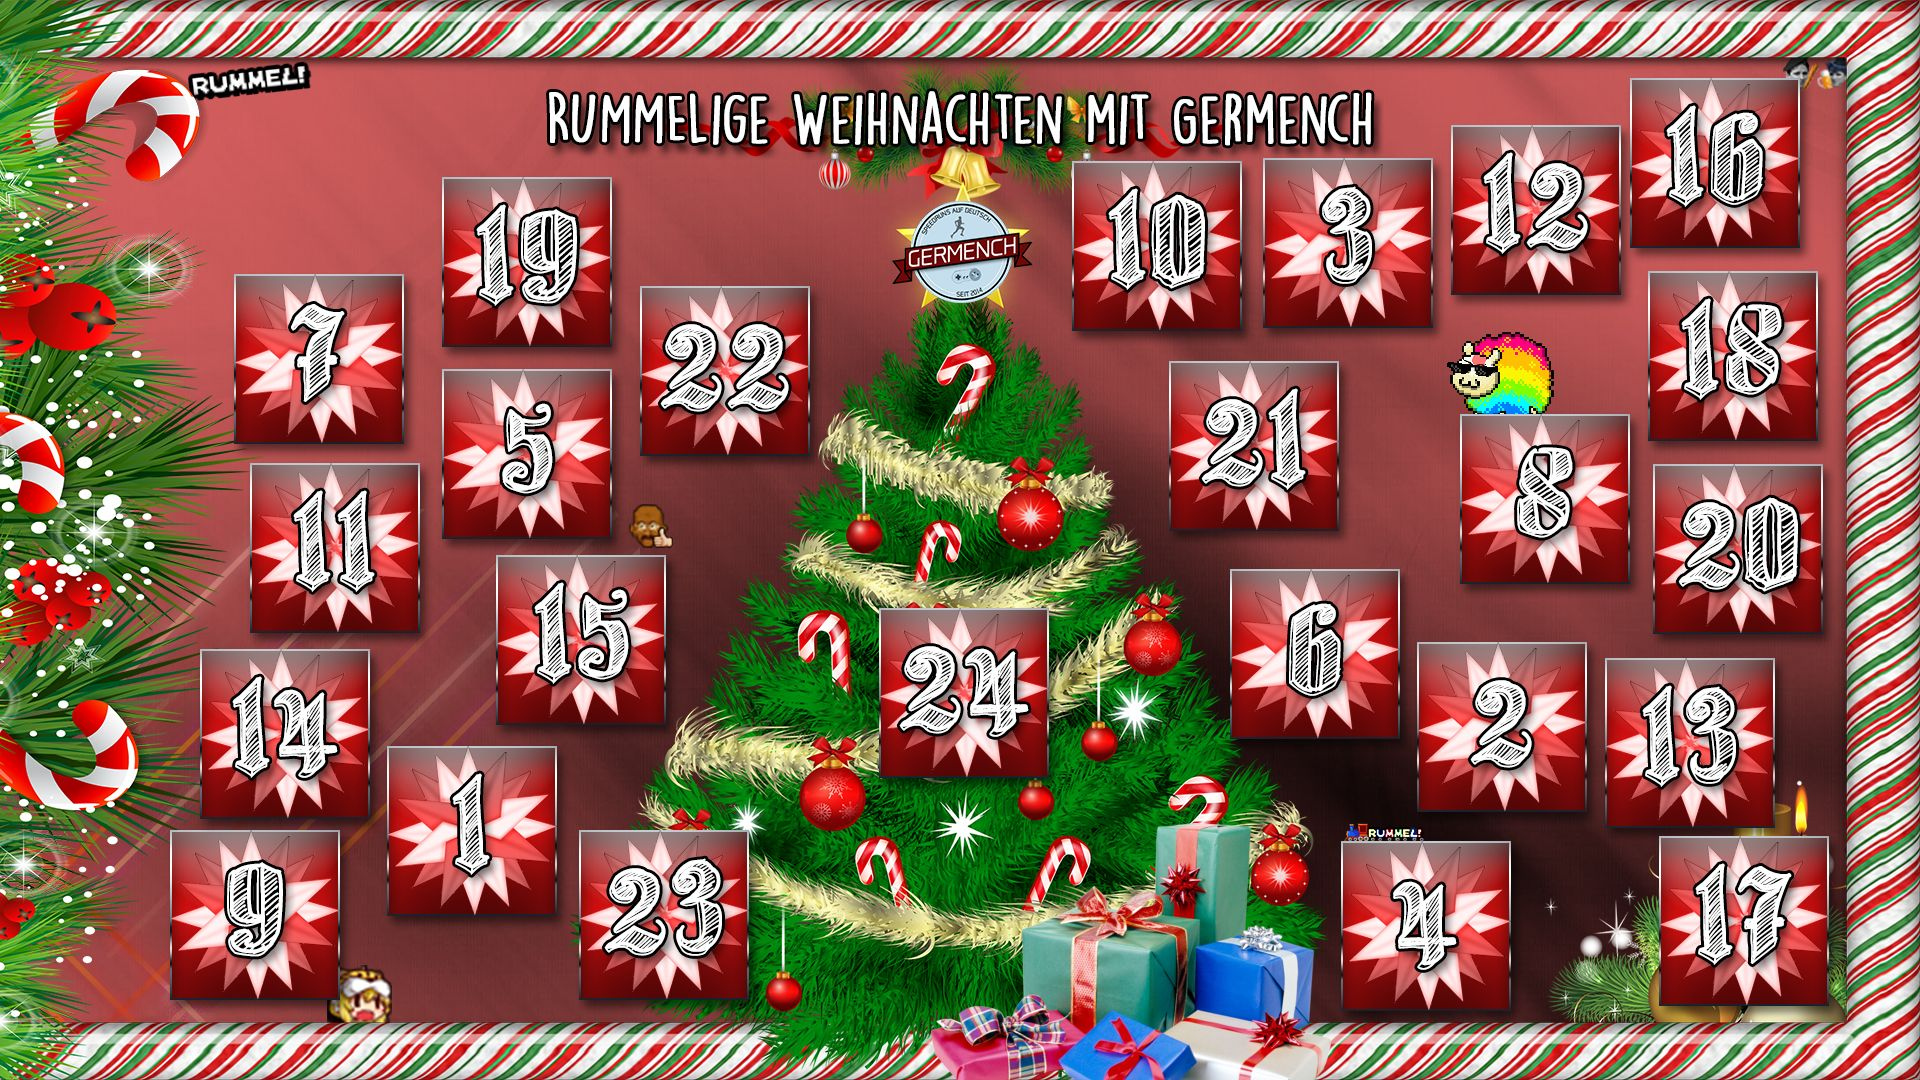 Der Germench-Adventskalender 2017